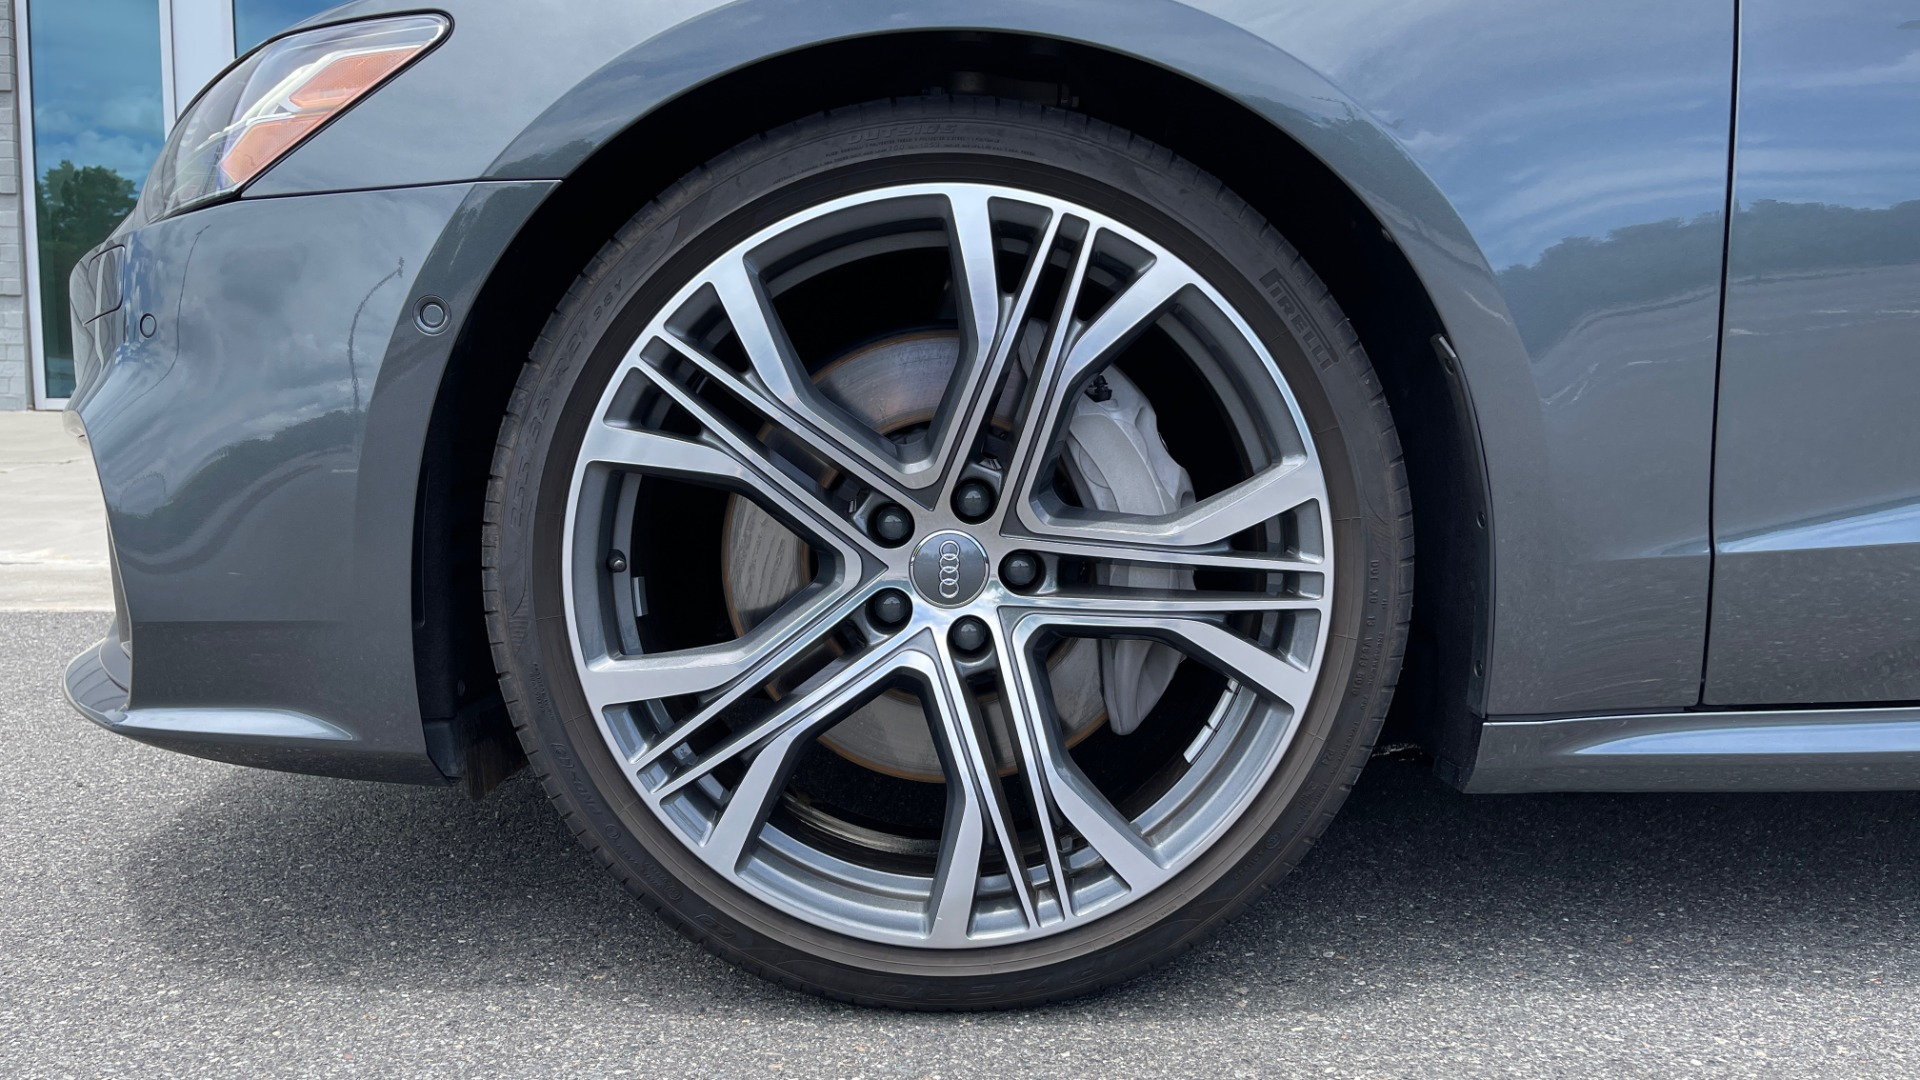 Used 2019 Audi A7 PRESTIGE 55 TFSI 3.0T / NAV / B&O SND / SUNROOF / S-LINE / 21IN WHLS / REAR for sale $66,995 at Formula Imports in Charlotte NC 28227 80